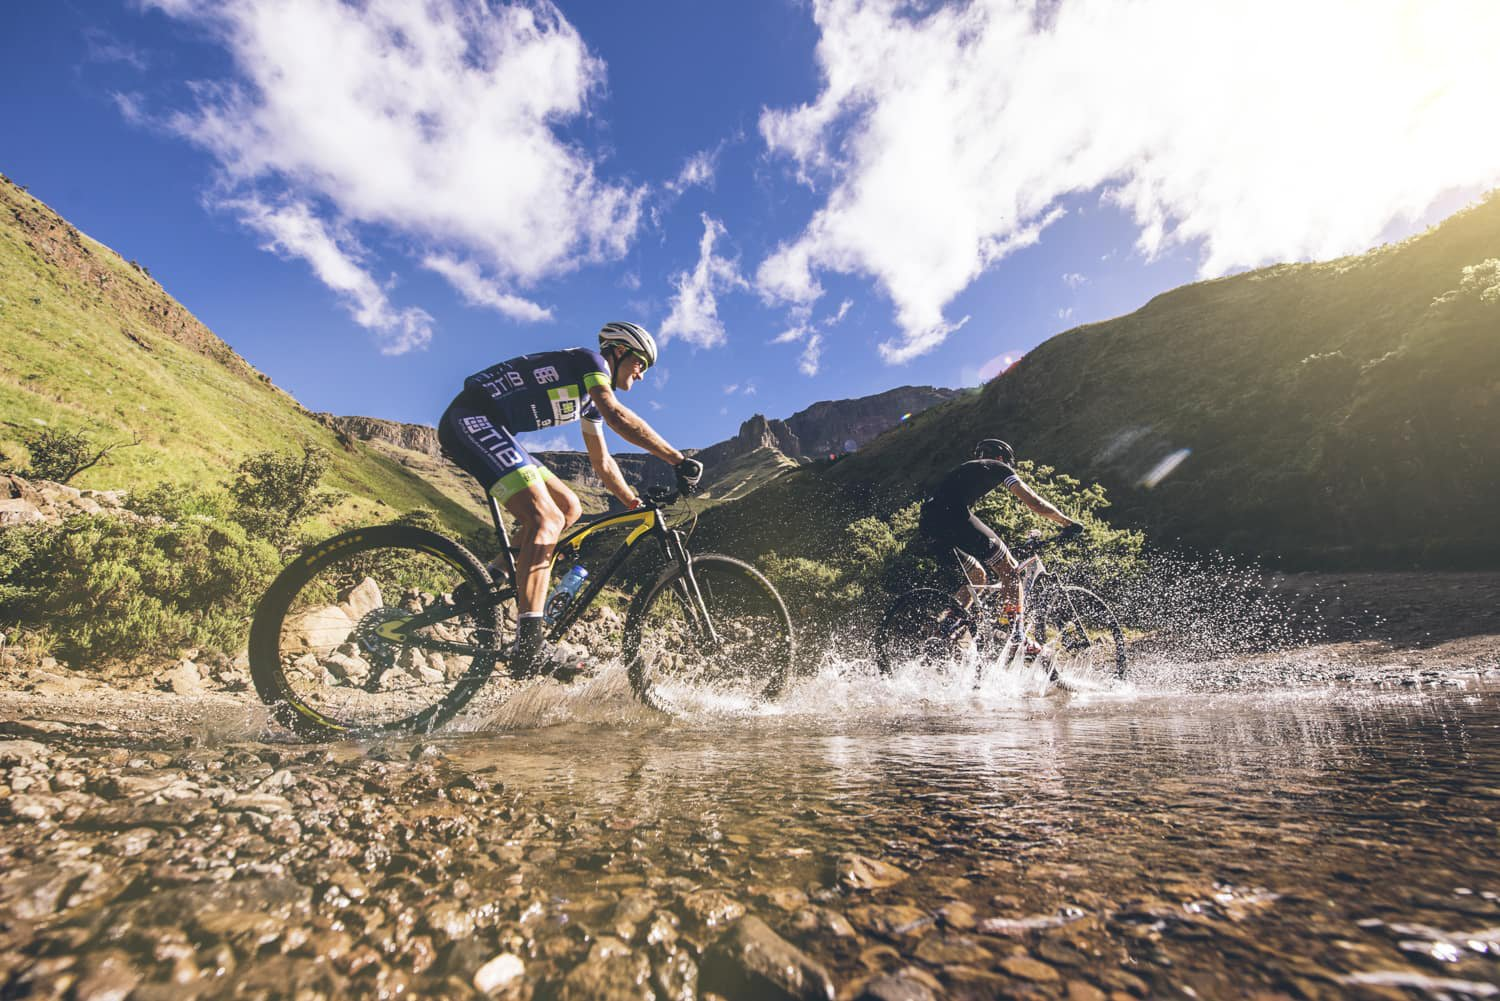 sani-pass-desmond-louw-bicycling-magazine-wowrides-0060